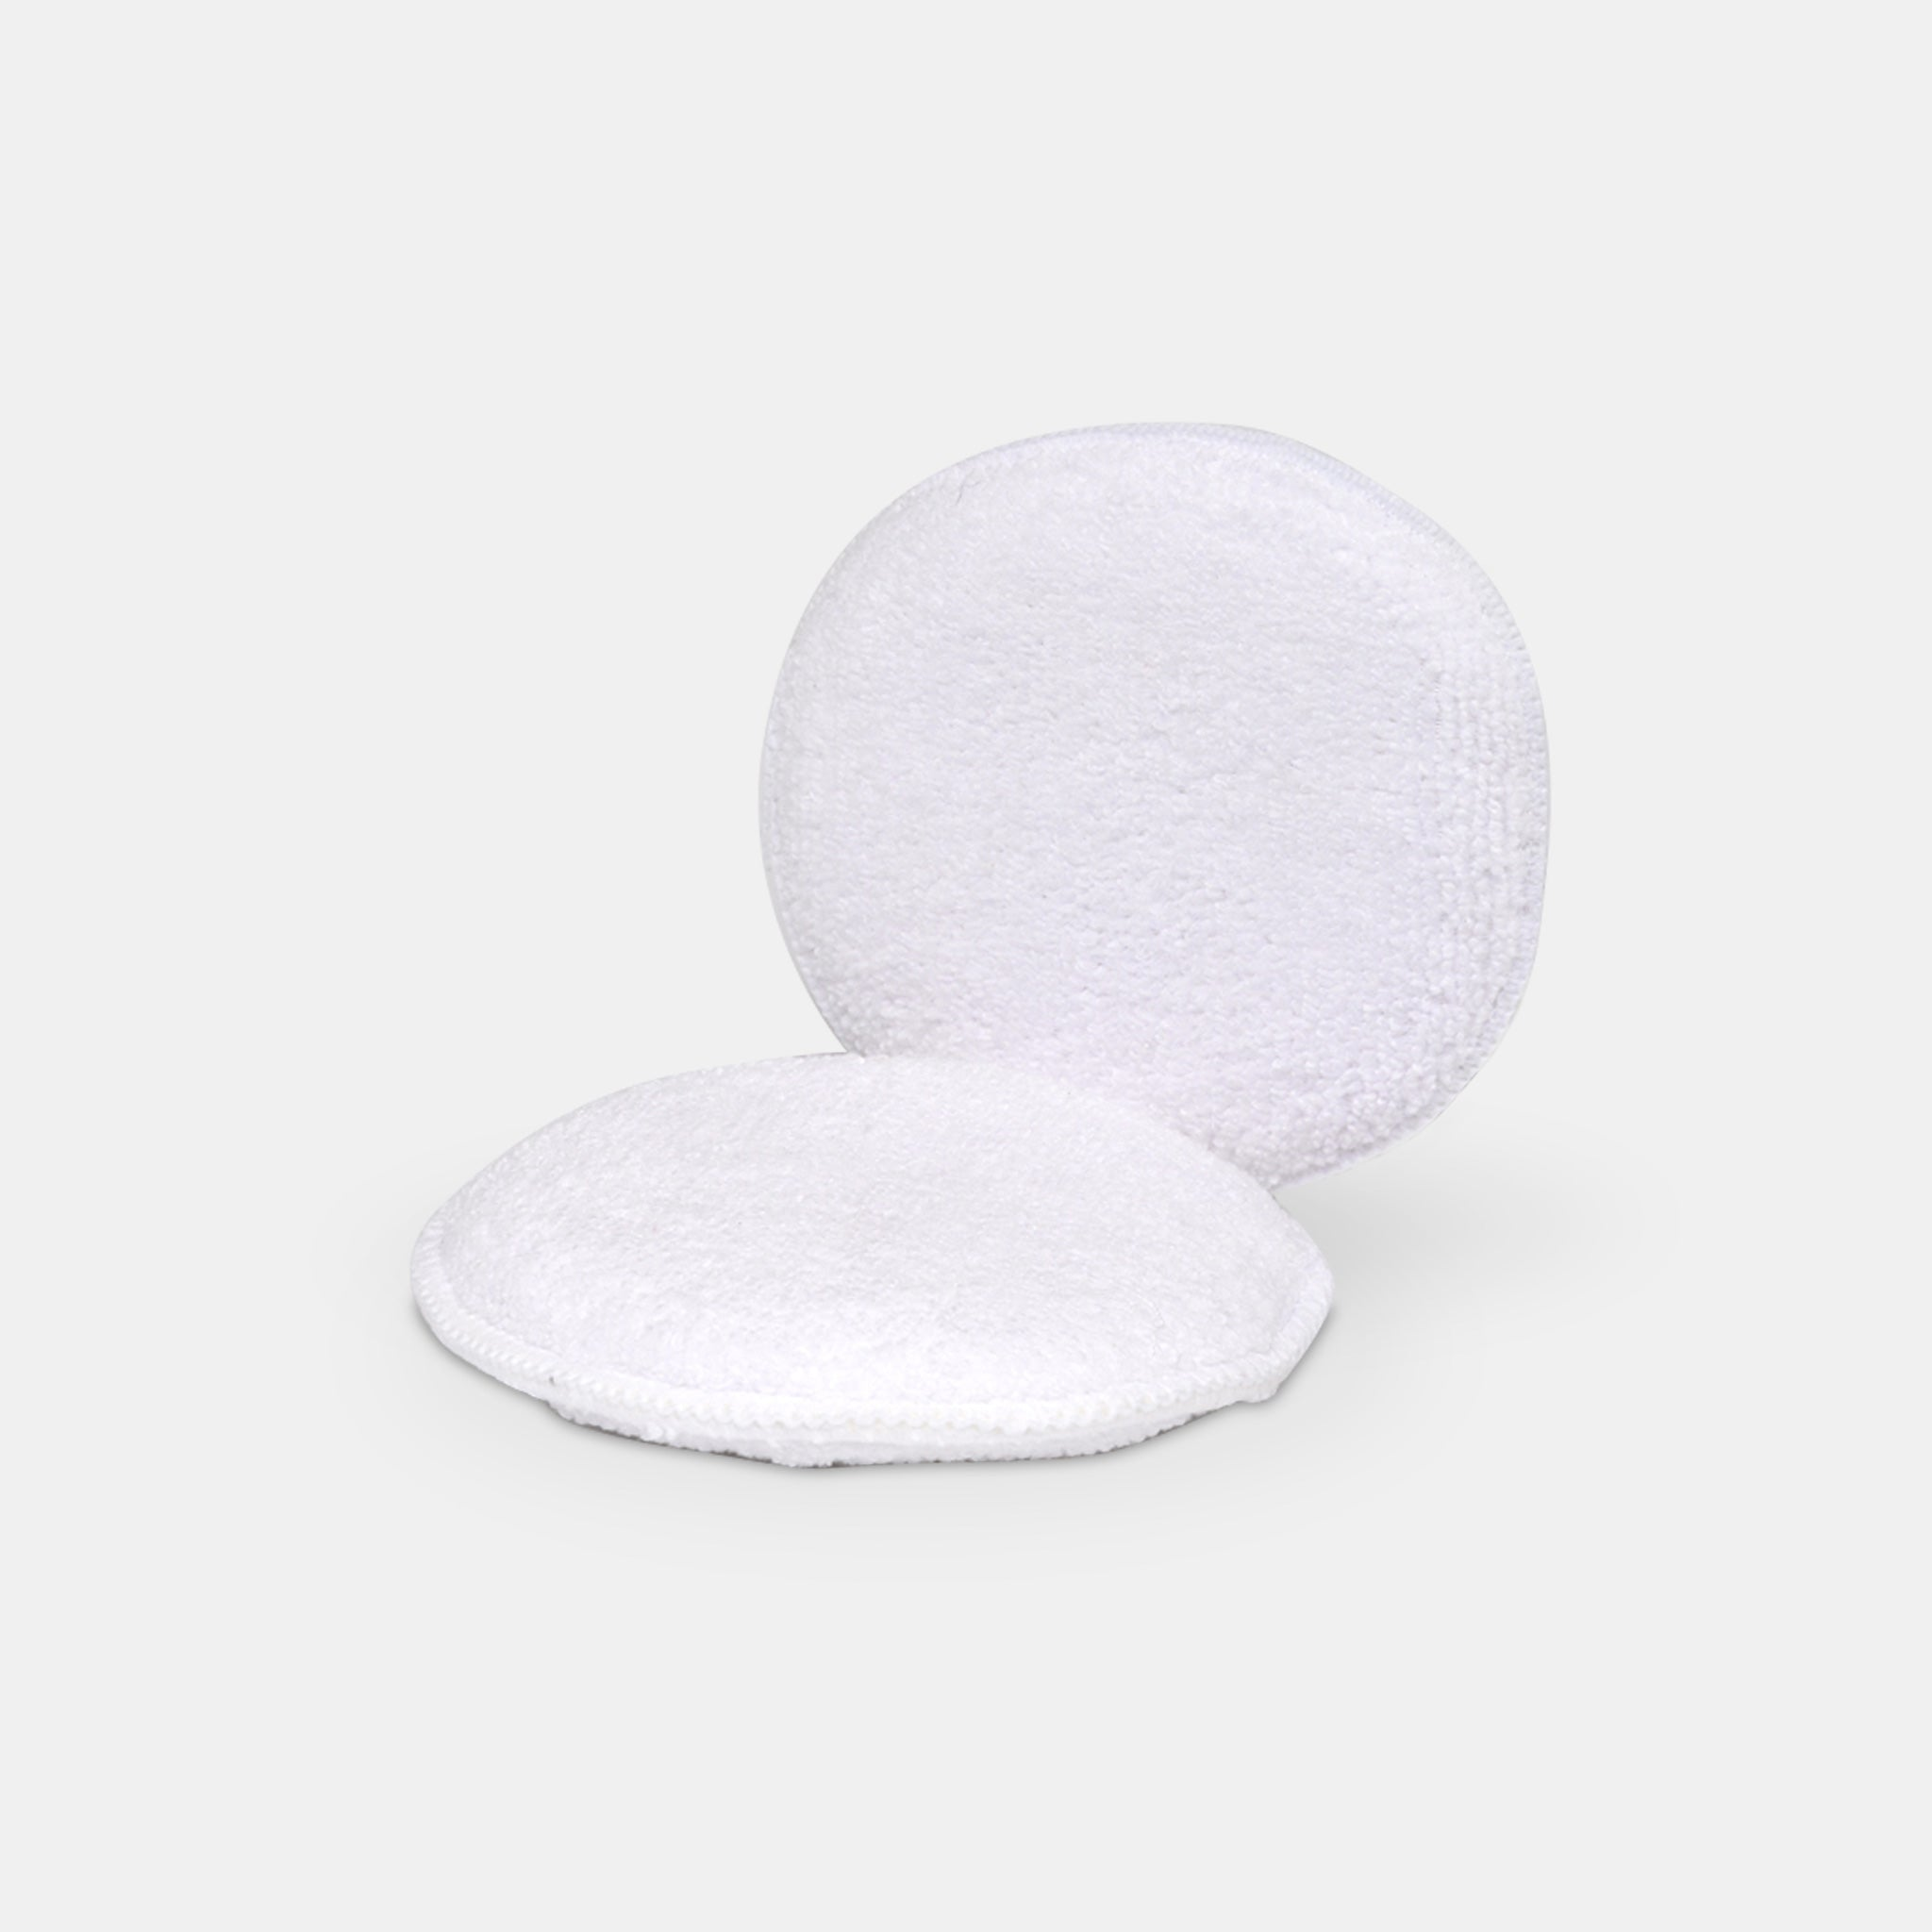 Greased Lightning set of 2 Microfibre Polishing Pads for Lovely Leather